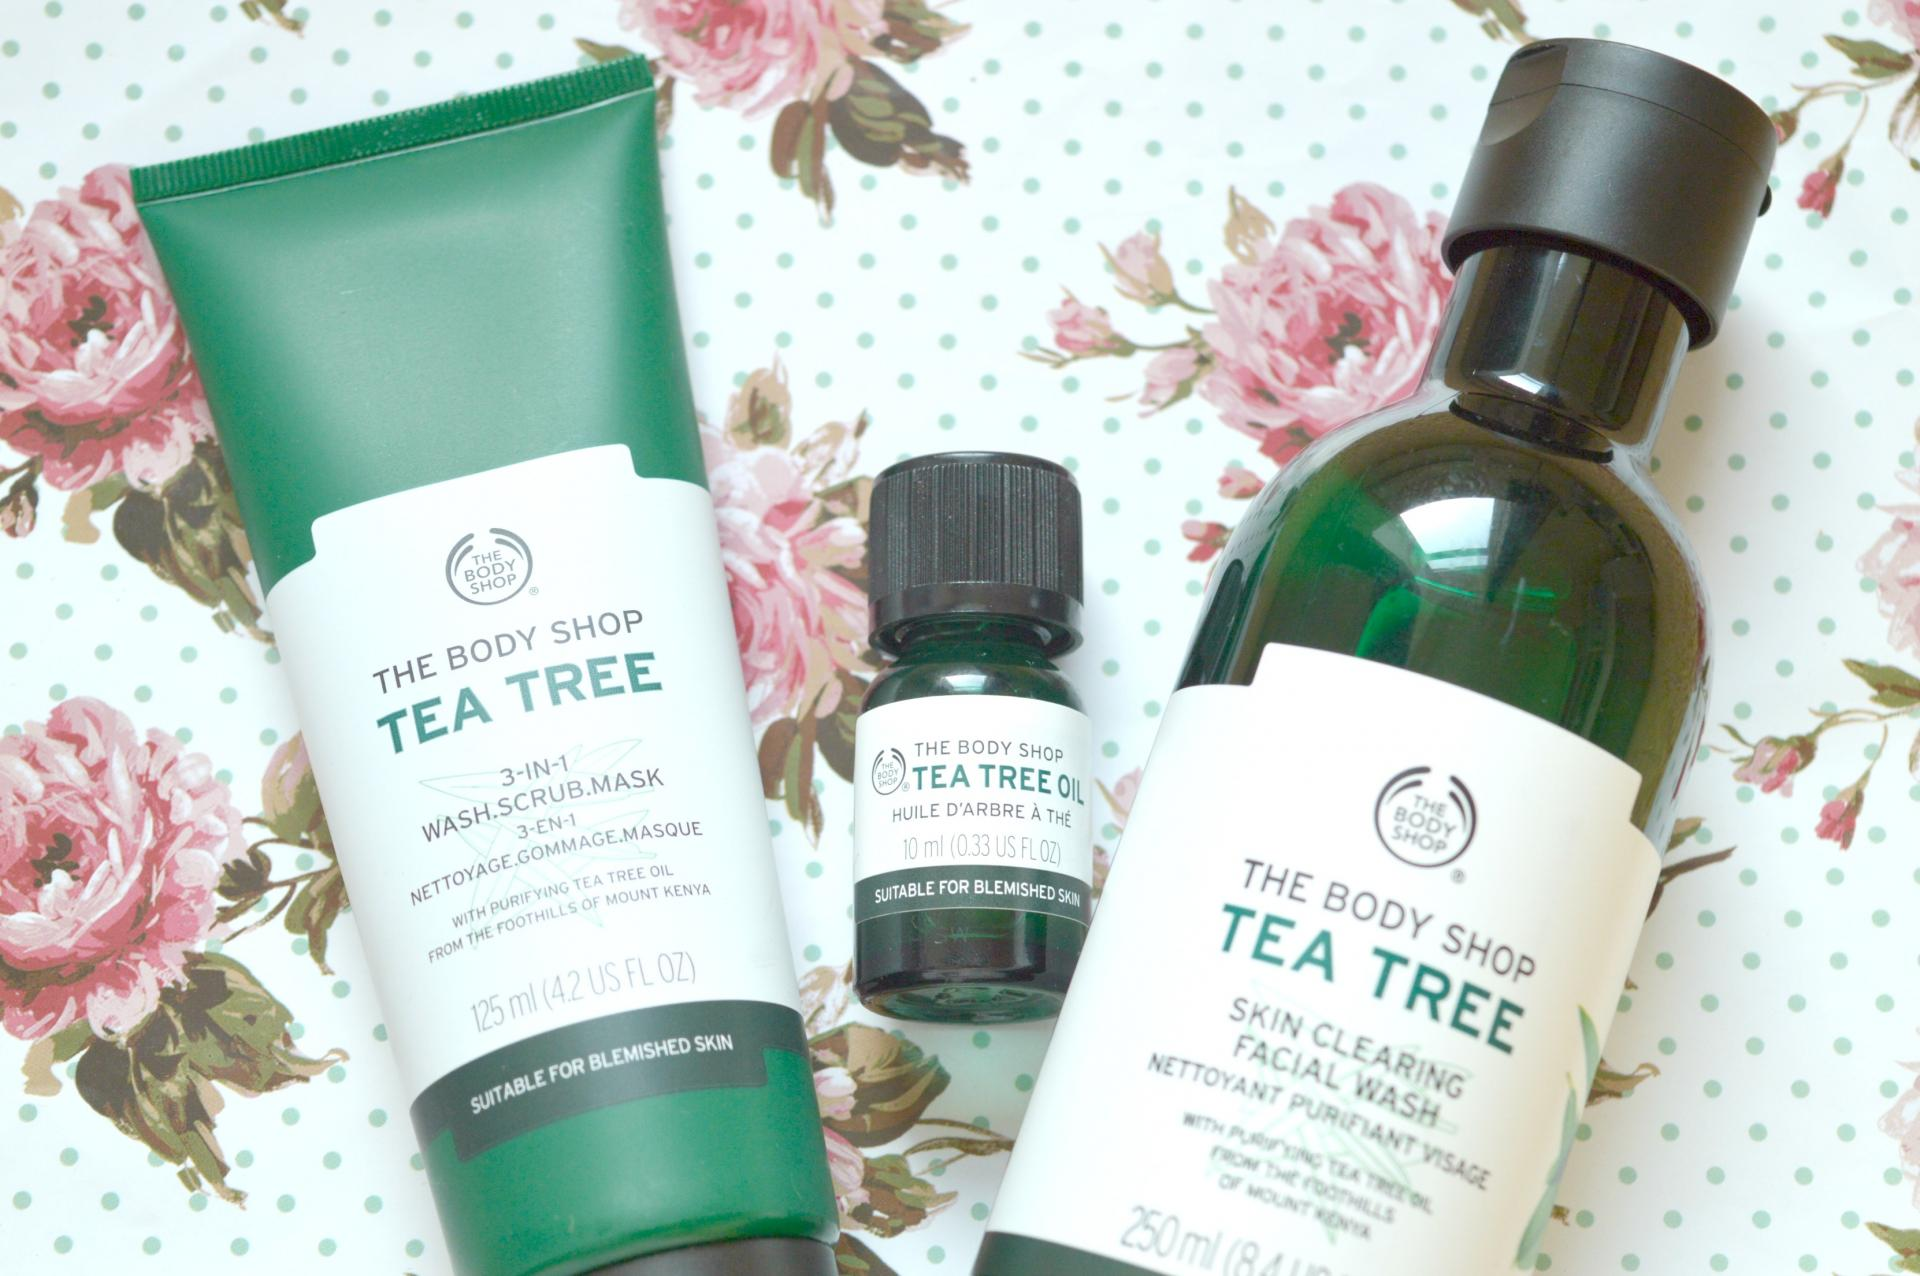 Perfect Spot Fighting Range? The Body Shop Tea Tree Range | The Body Shop Tea Tree 3-in-1 Wash Scrub Mask, The Body Shop Tea Tree Oil and The Body Shop Tea Tree Skin Cleansing Facial Wash